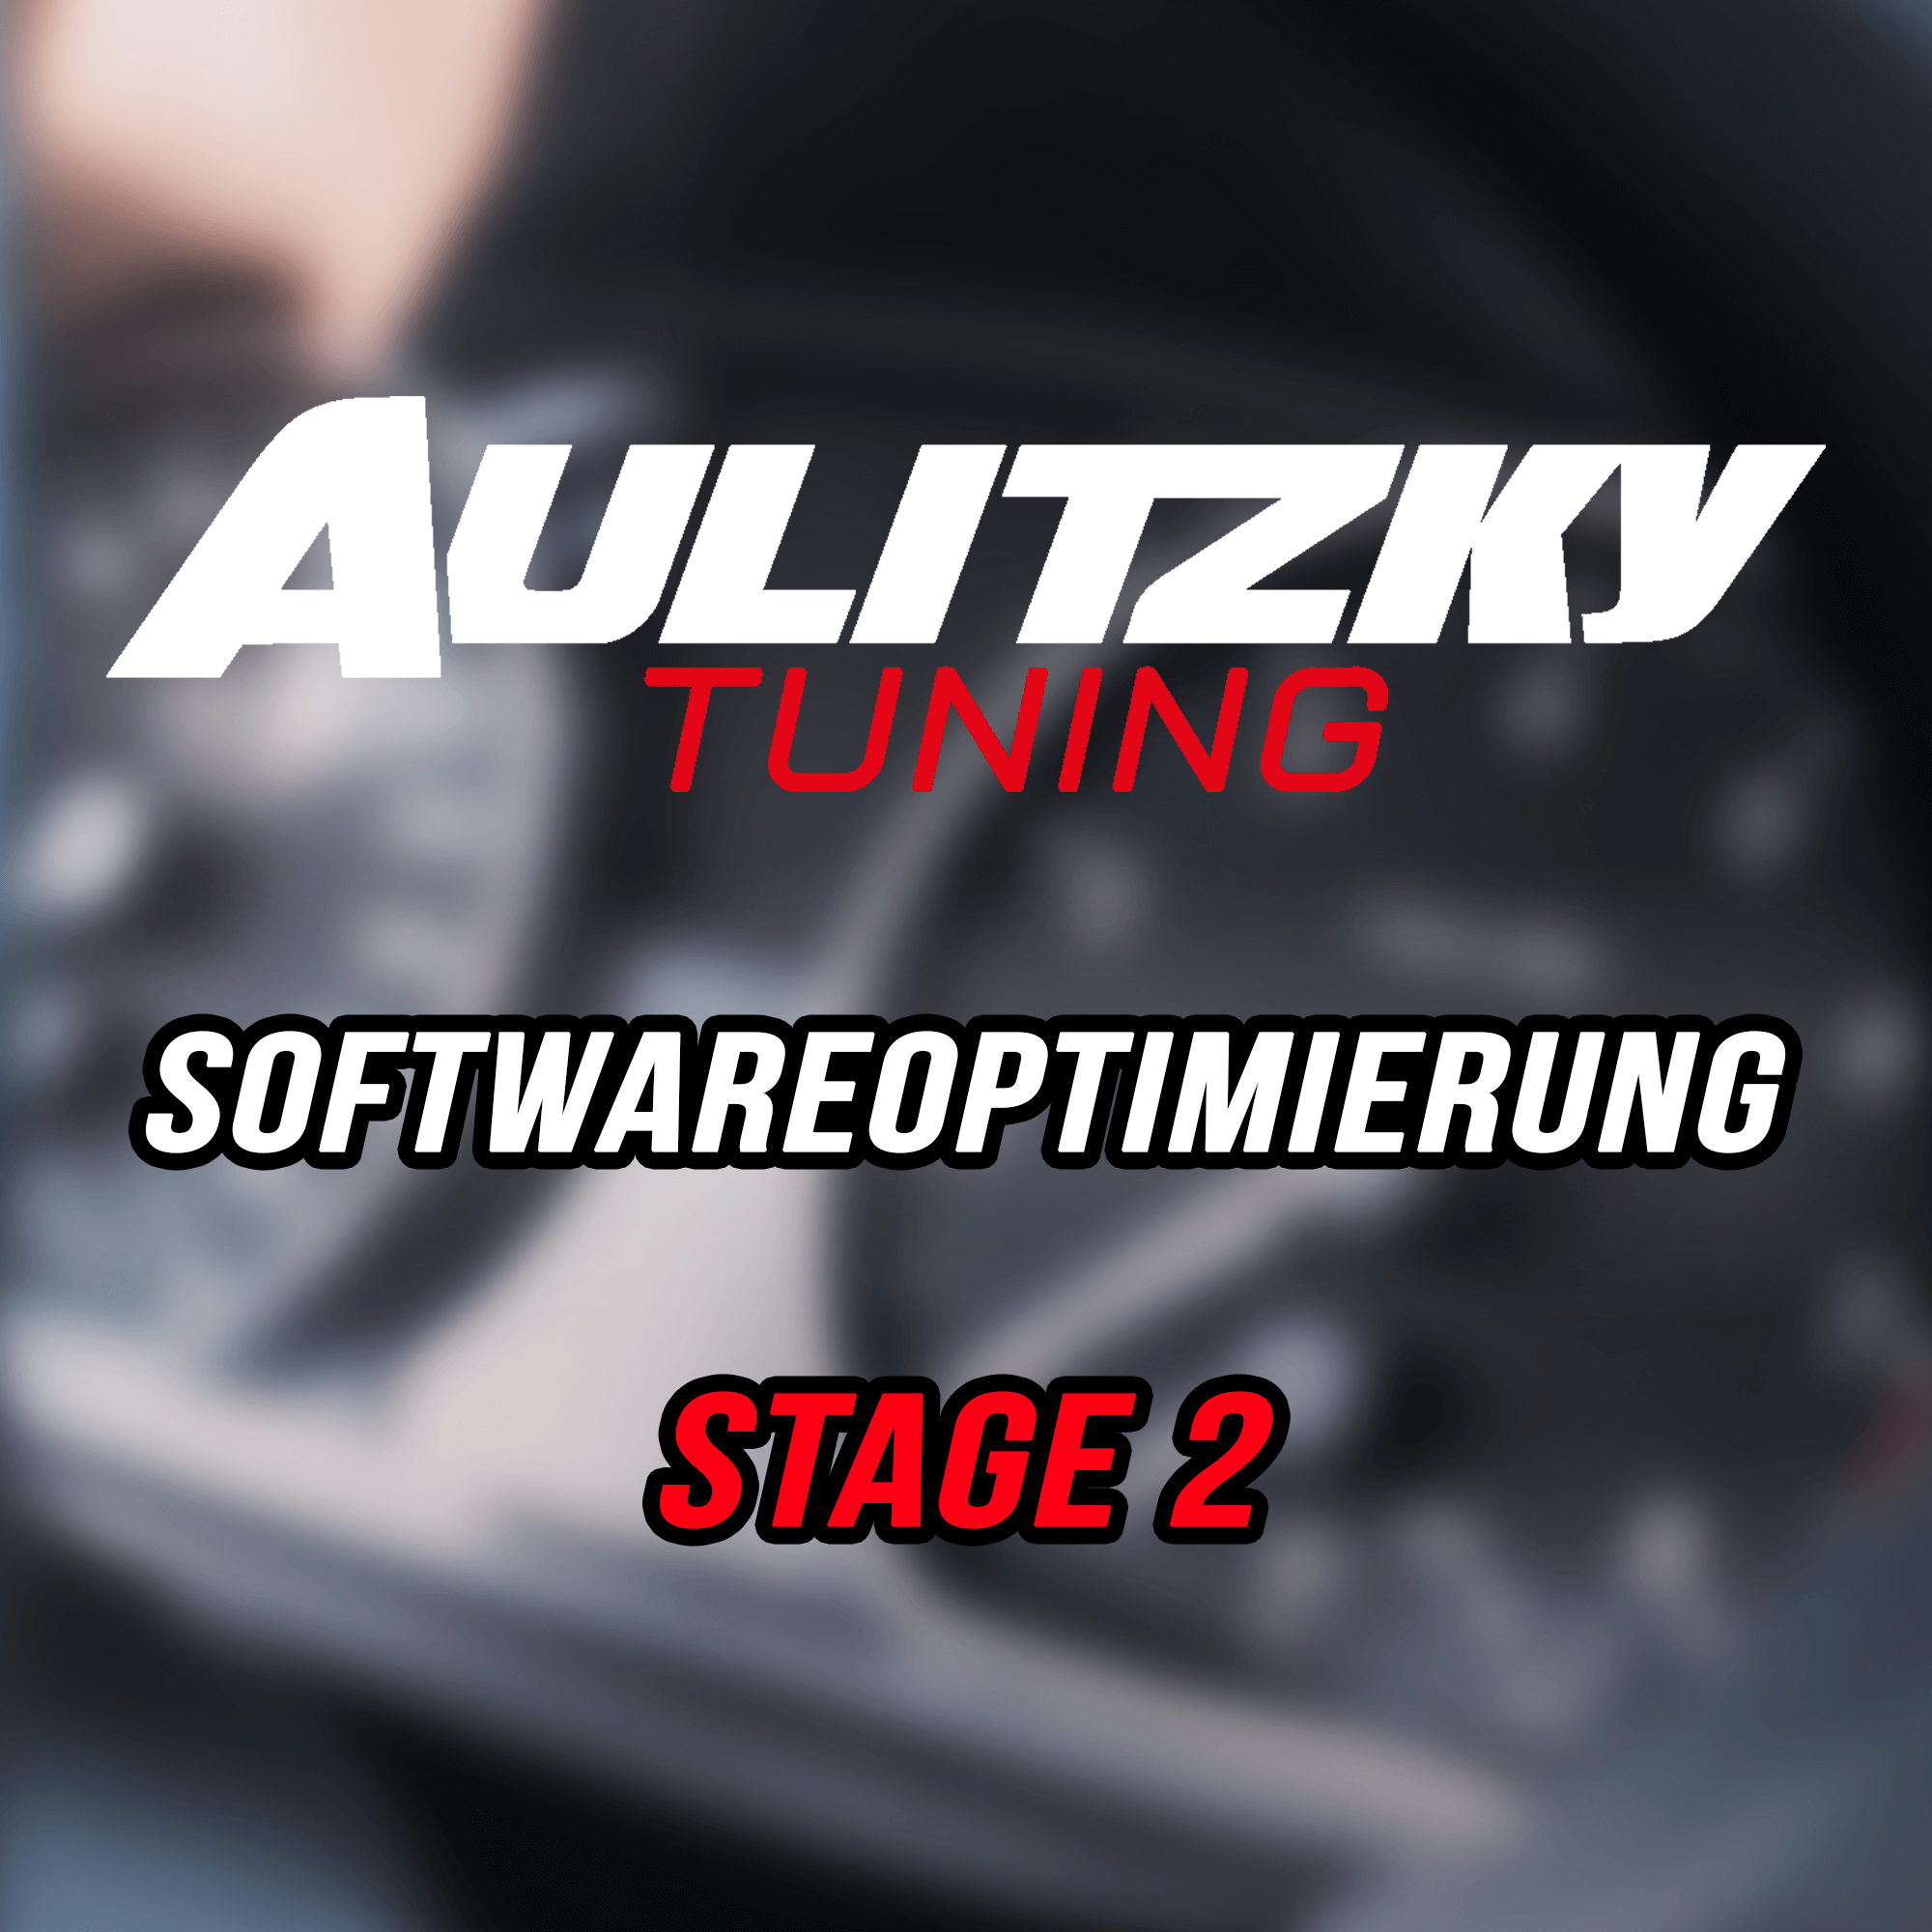 Aulitzky Tuning | Softwareoptimierung Stage 2 | BMW M3/M4 Competition | F80,F82, F83 | TÜV